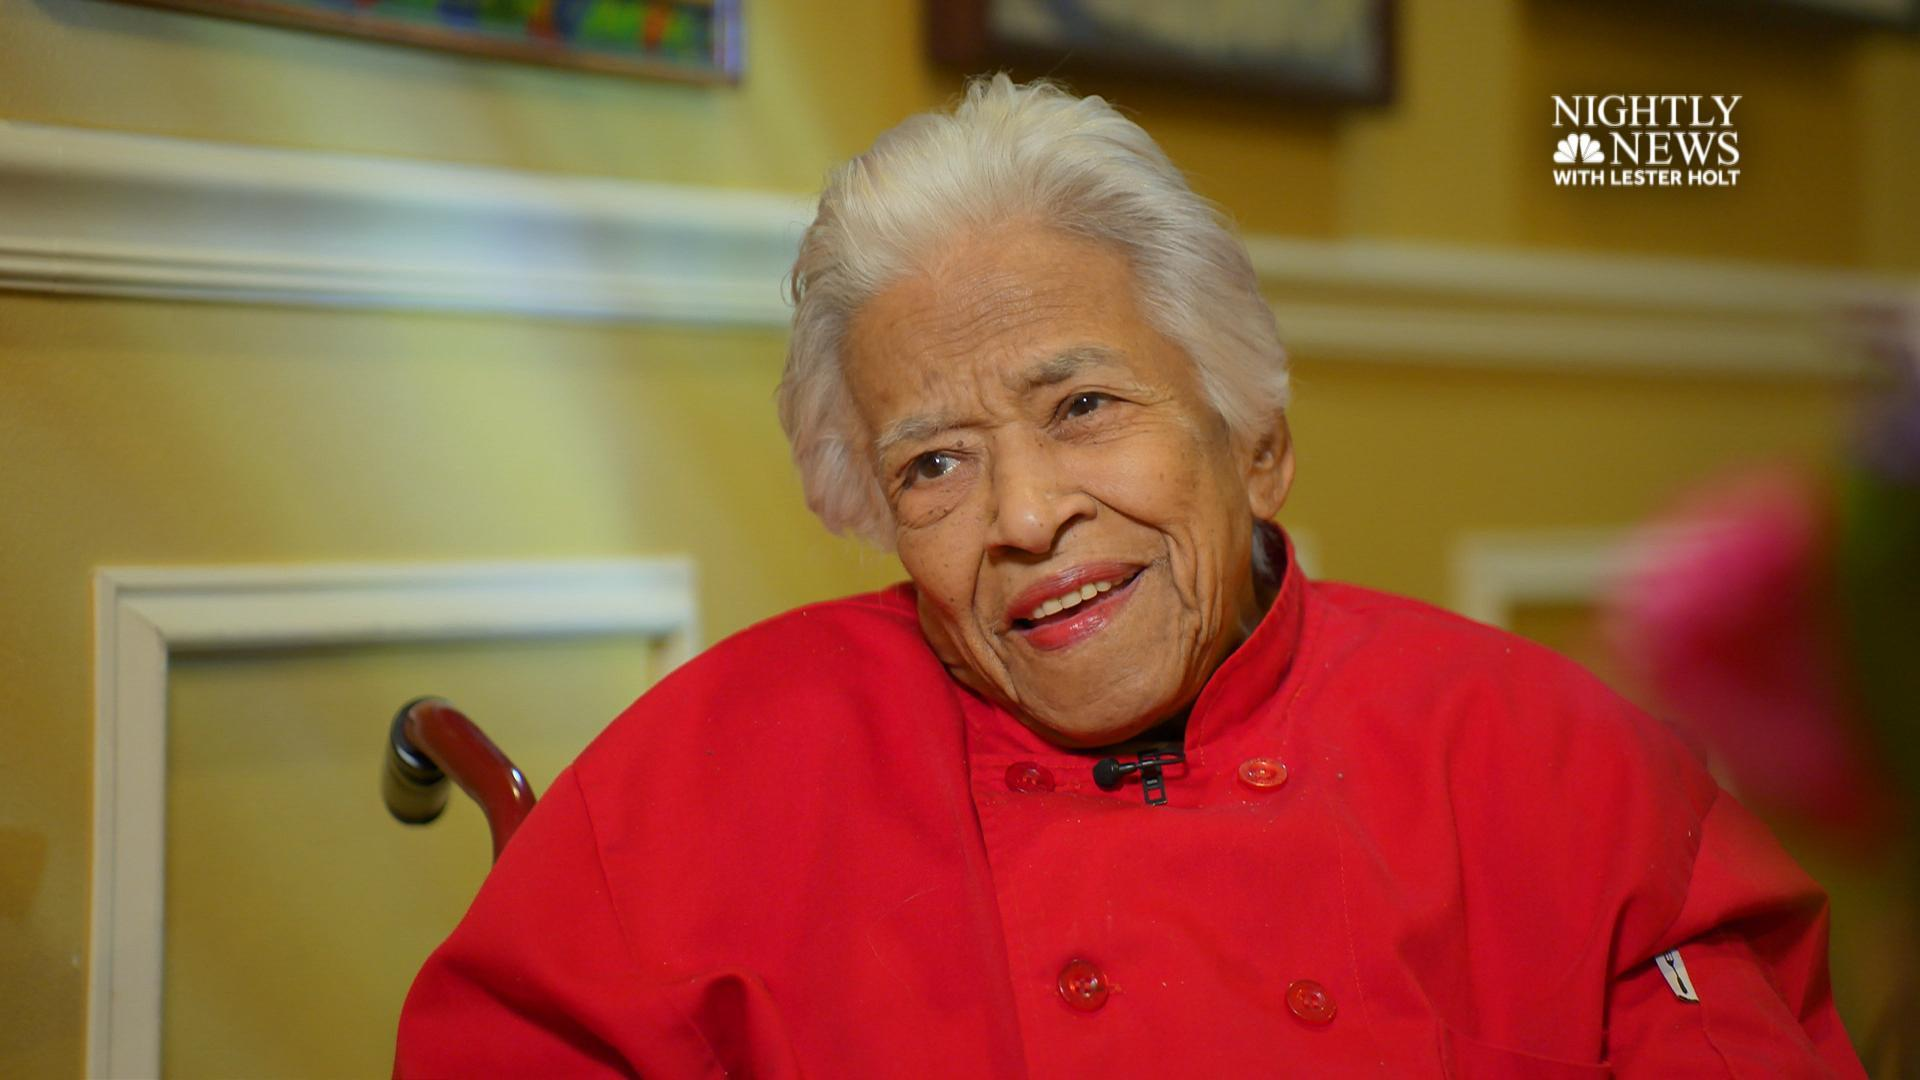 96-year-old chef serves up classic Creole cuisine and New Orleans history (Part 1)